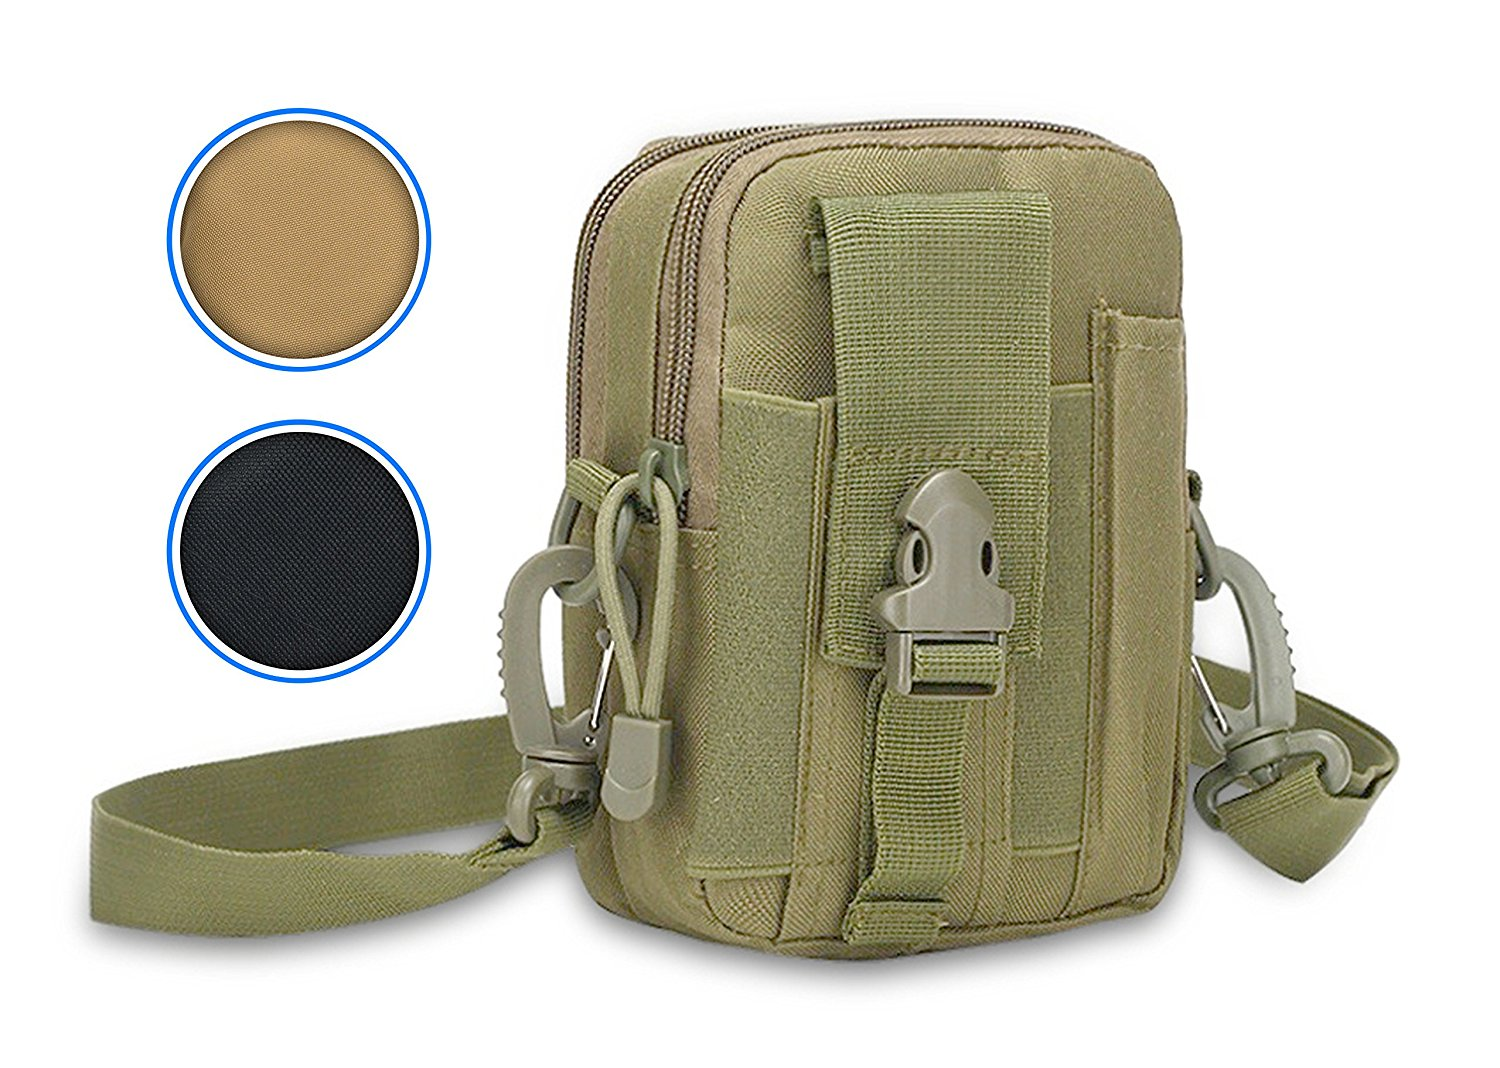 cdb0e6ba808 Rootless Tactical MOLLE Outdoor Phone Bag   Small Cell Phone Gadget Pack -  Includes Shoulder Strap